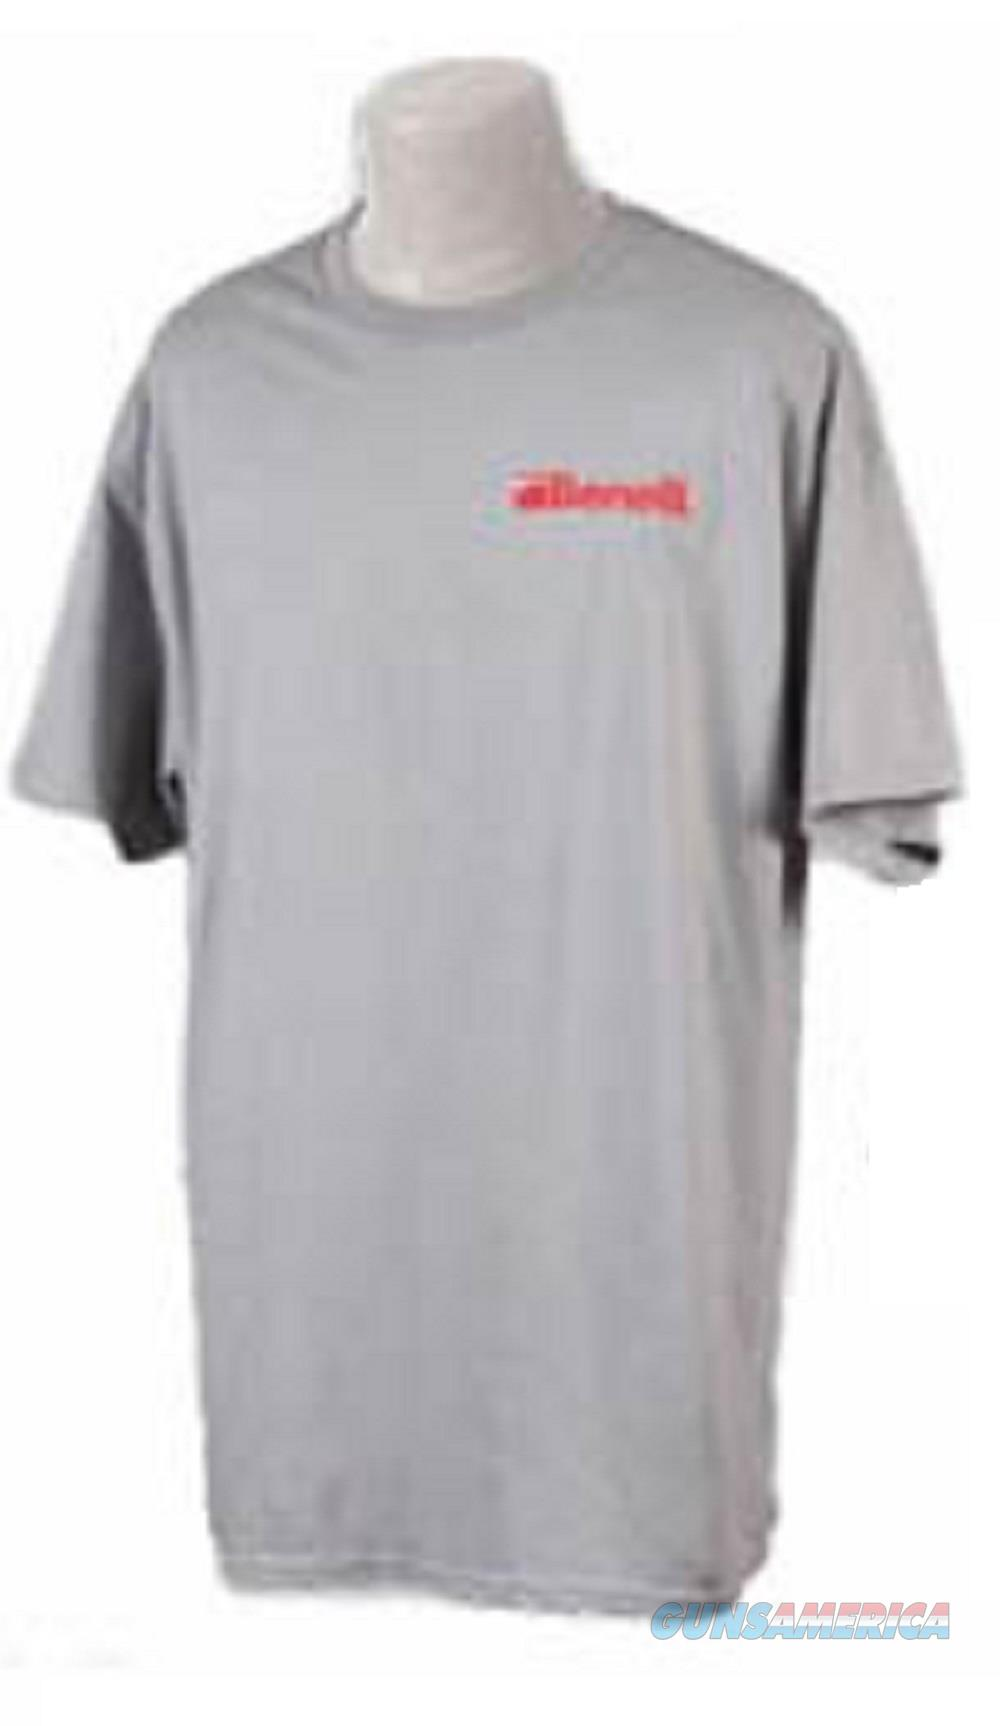 Benelli M2 T-Shirt Grey Large Red Logo  Non-Guns > Paintball > Clothing